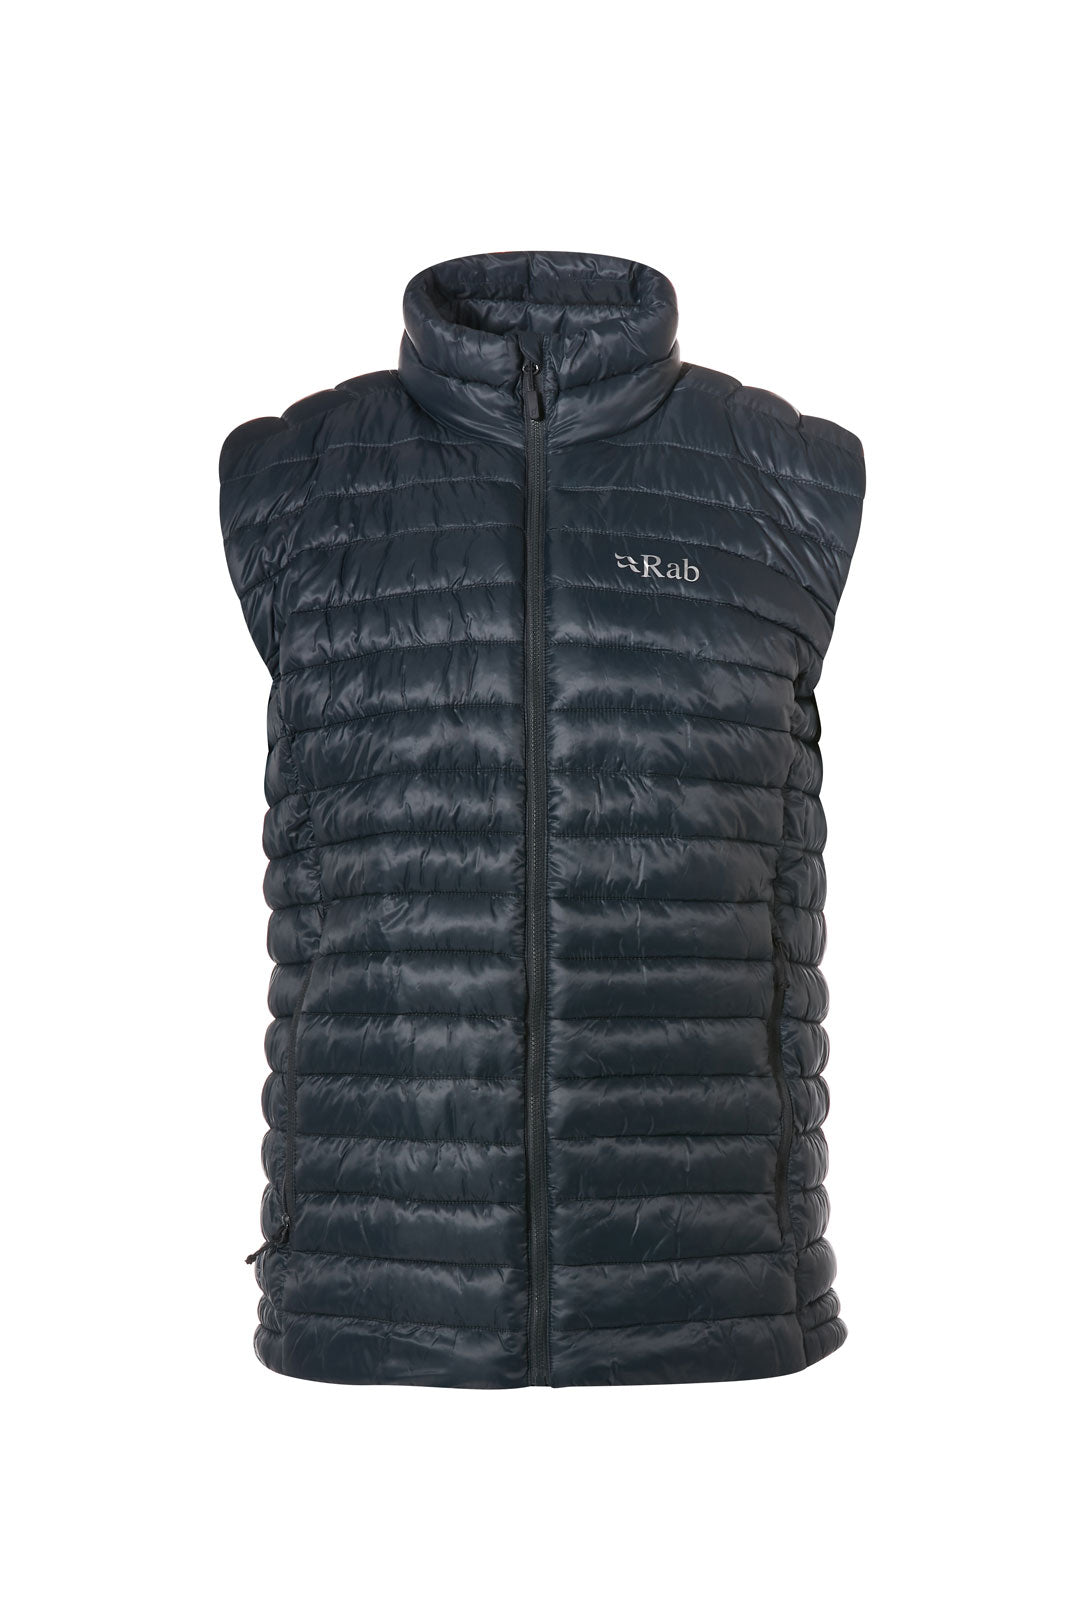 Rab Altus Lightweight Gilet for Men in Beluga / Zinc